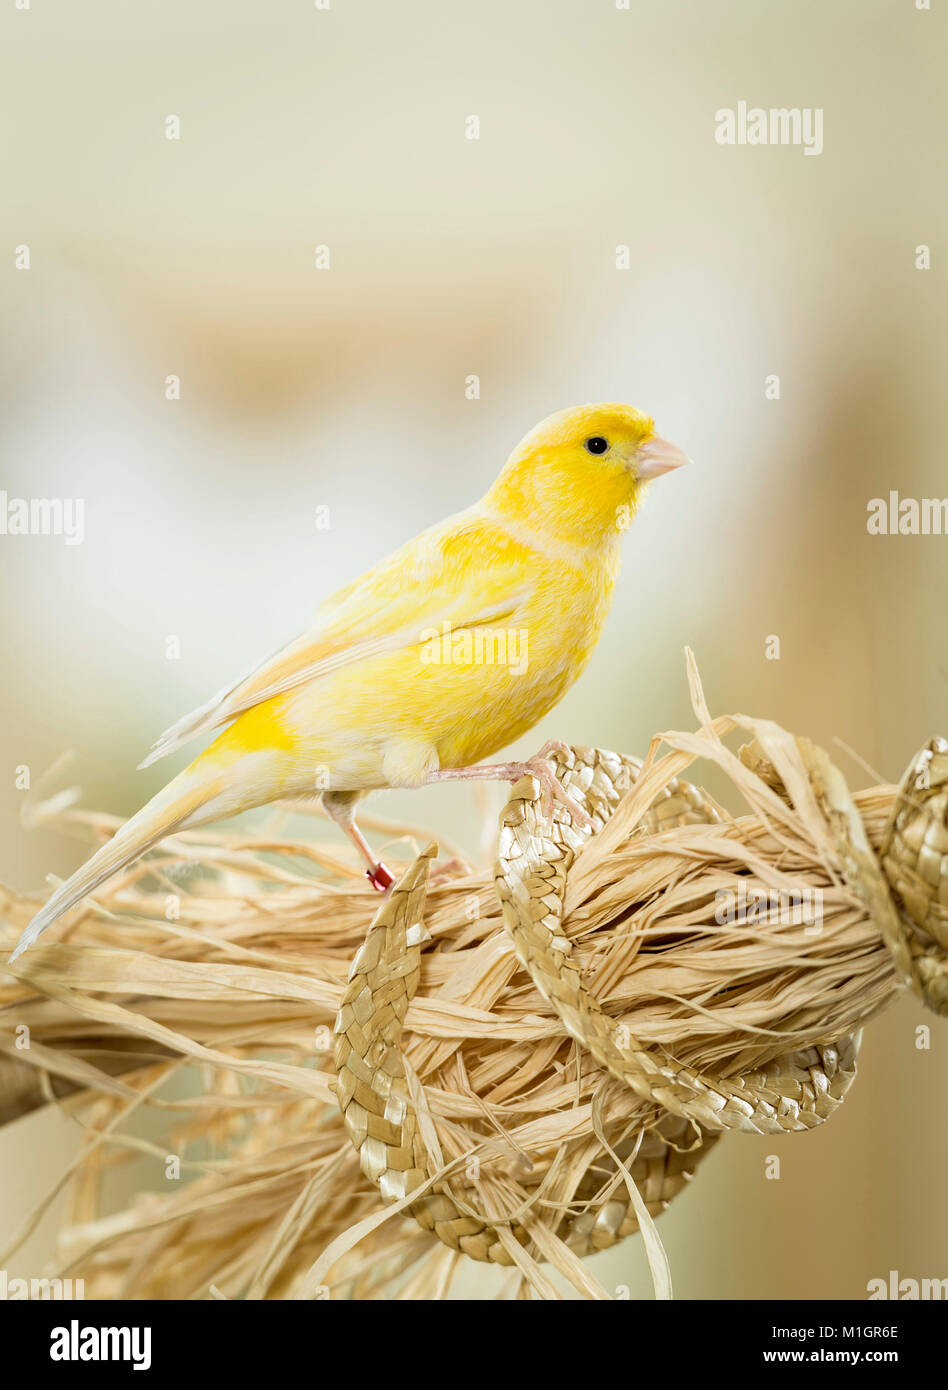 Domestic Canary. Adult perched on a bundle of bast fibres. Germany. - Stock Image